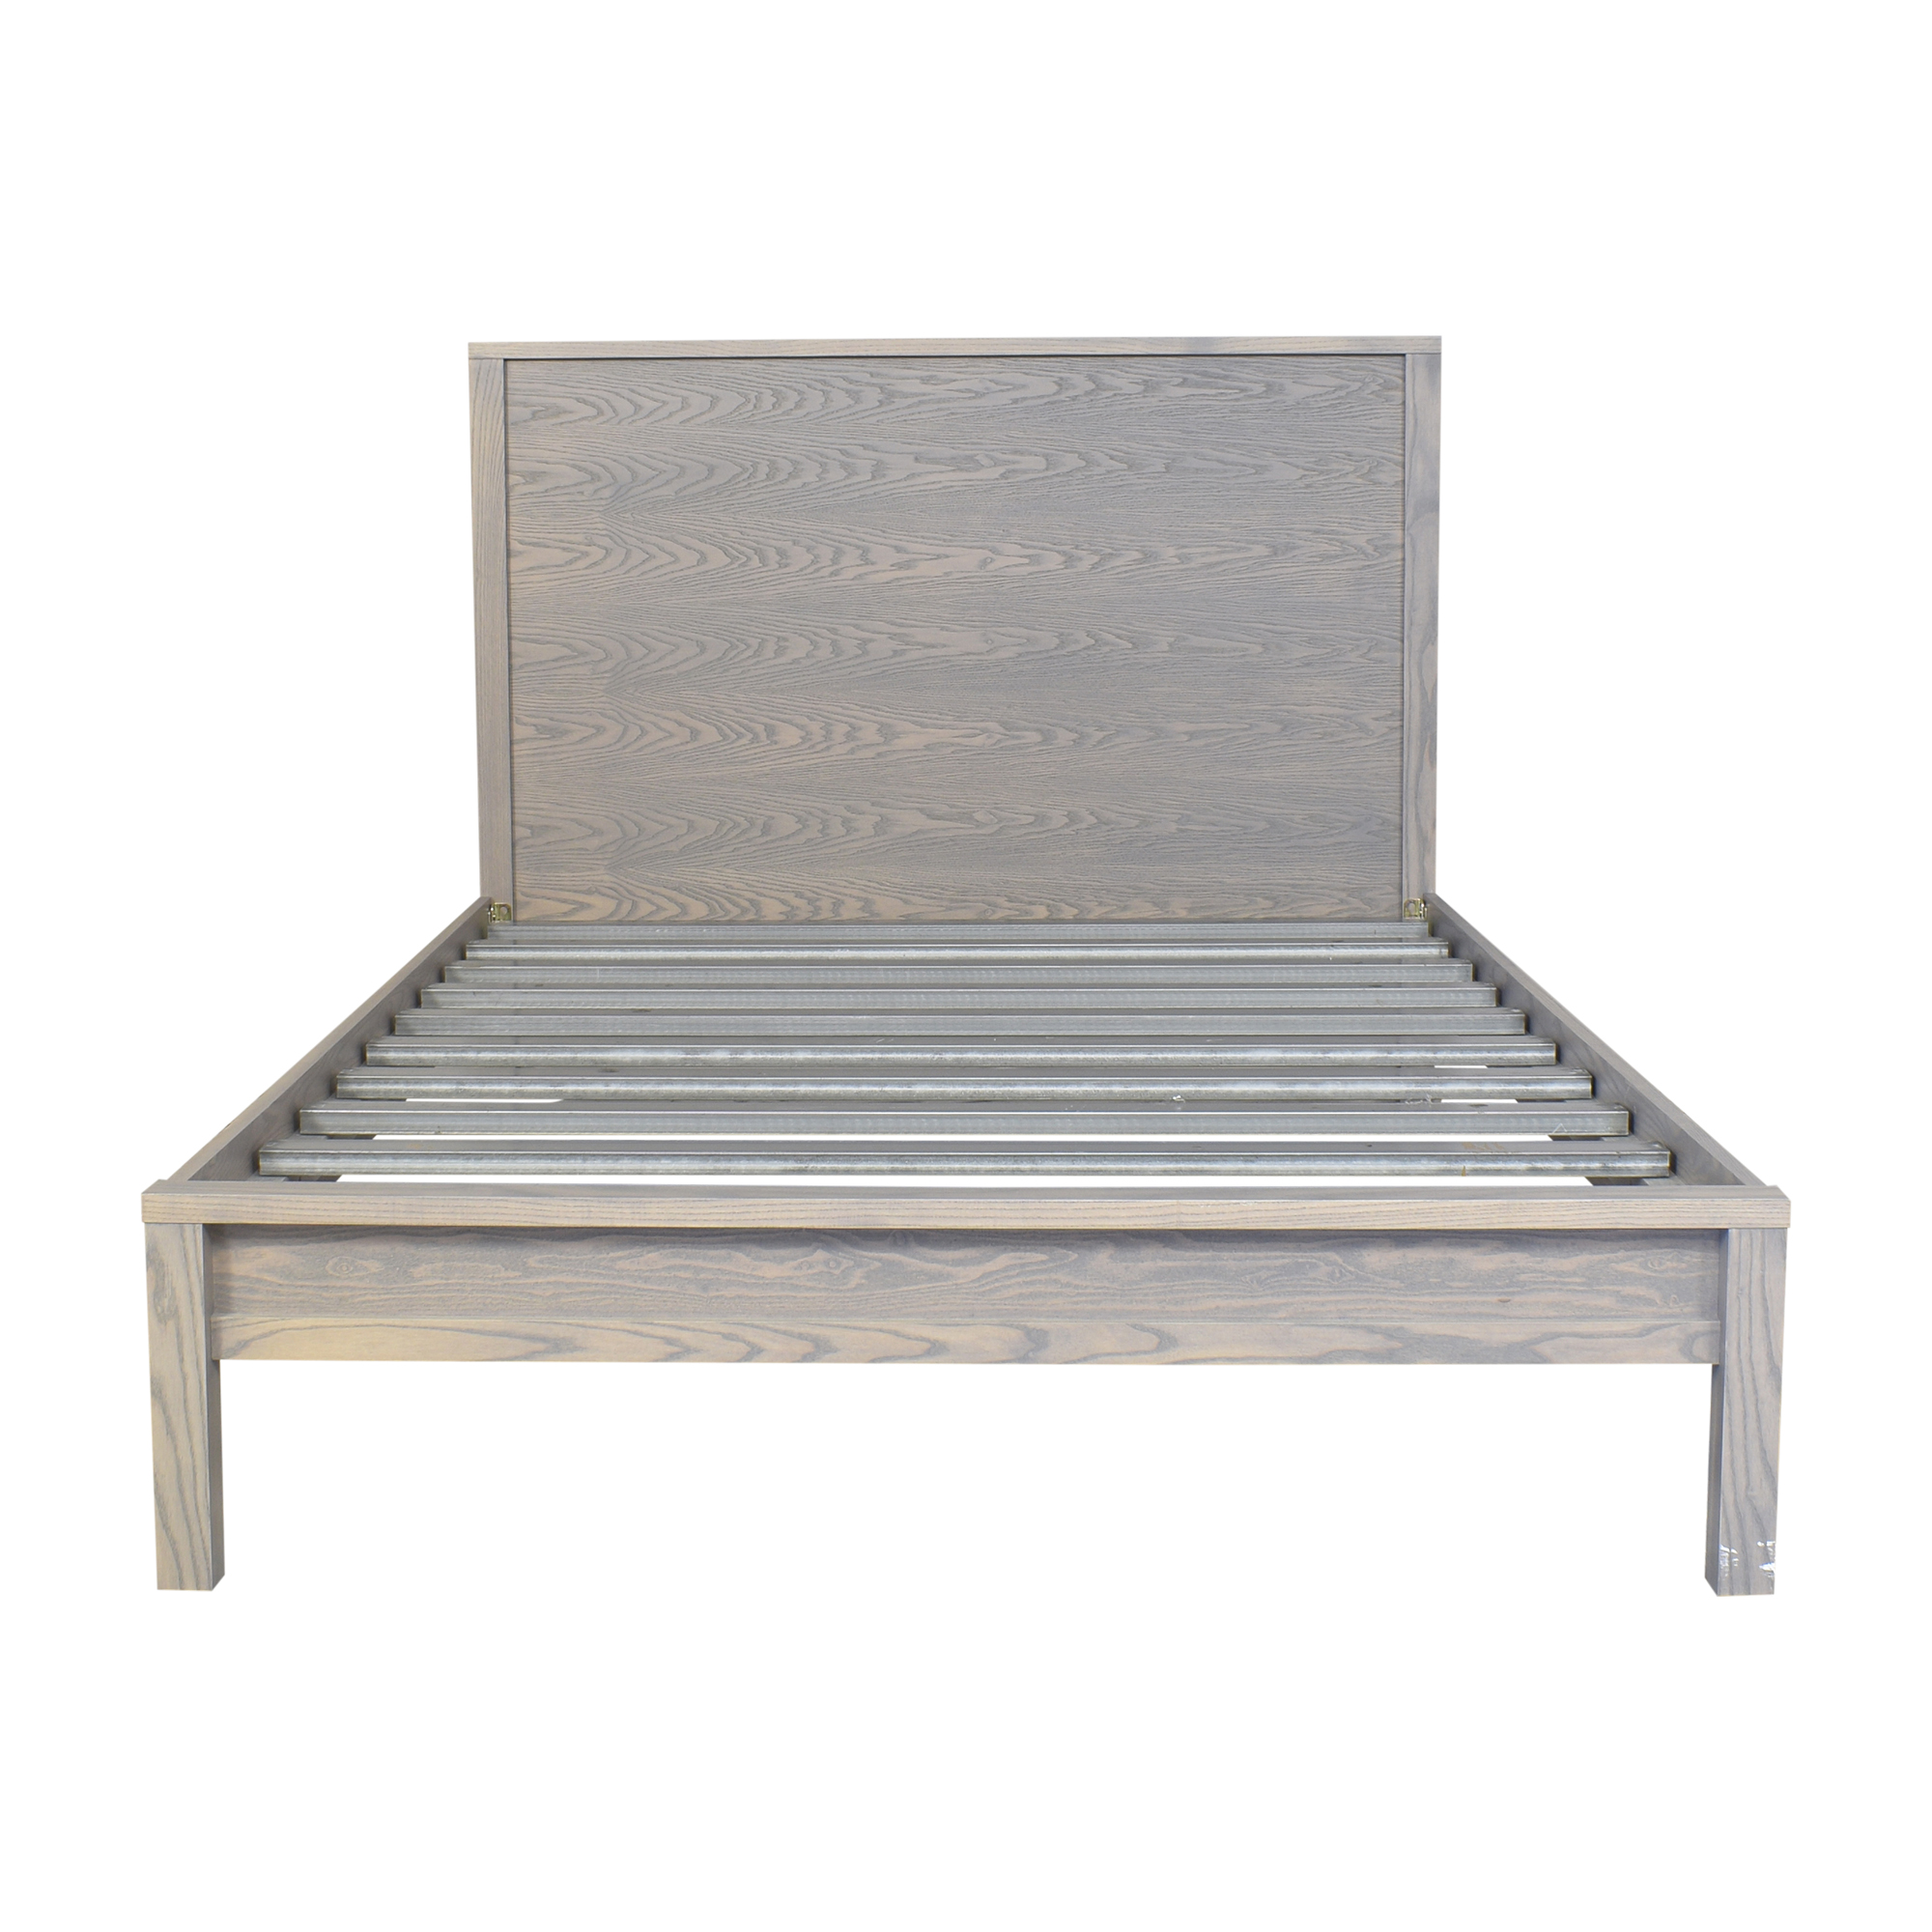 Room & Board Emerson Full Bed / Bed Frames